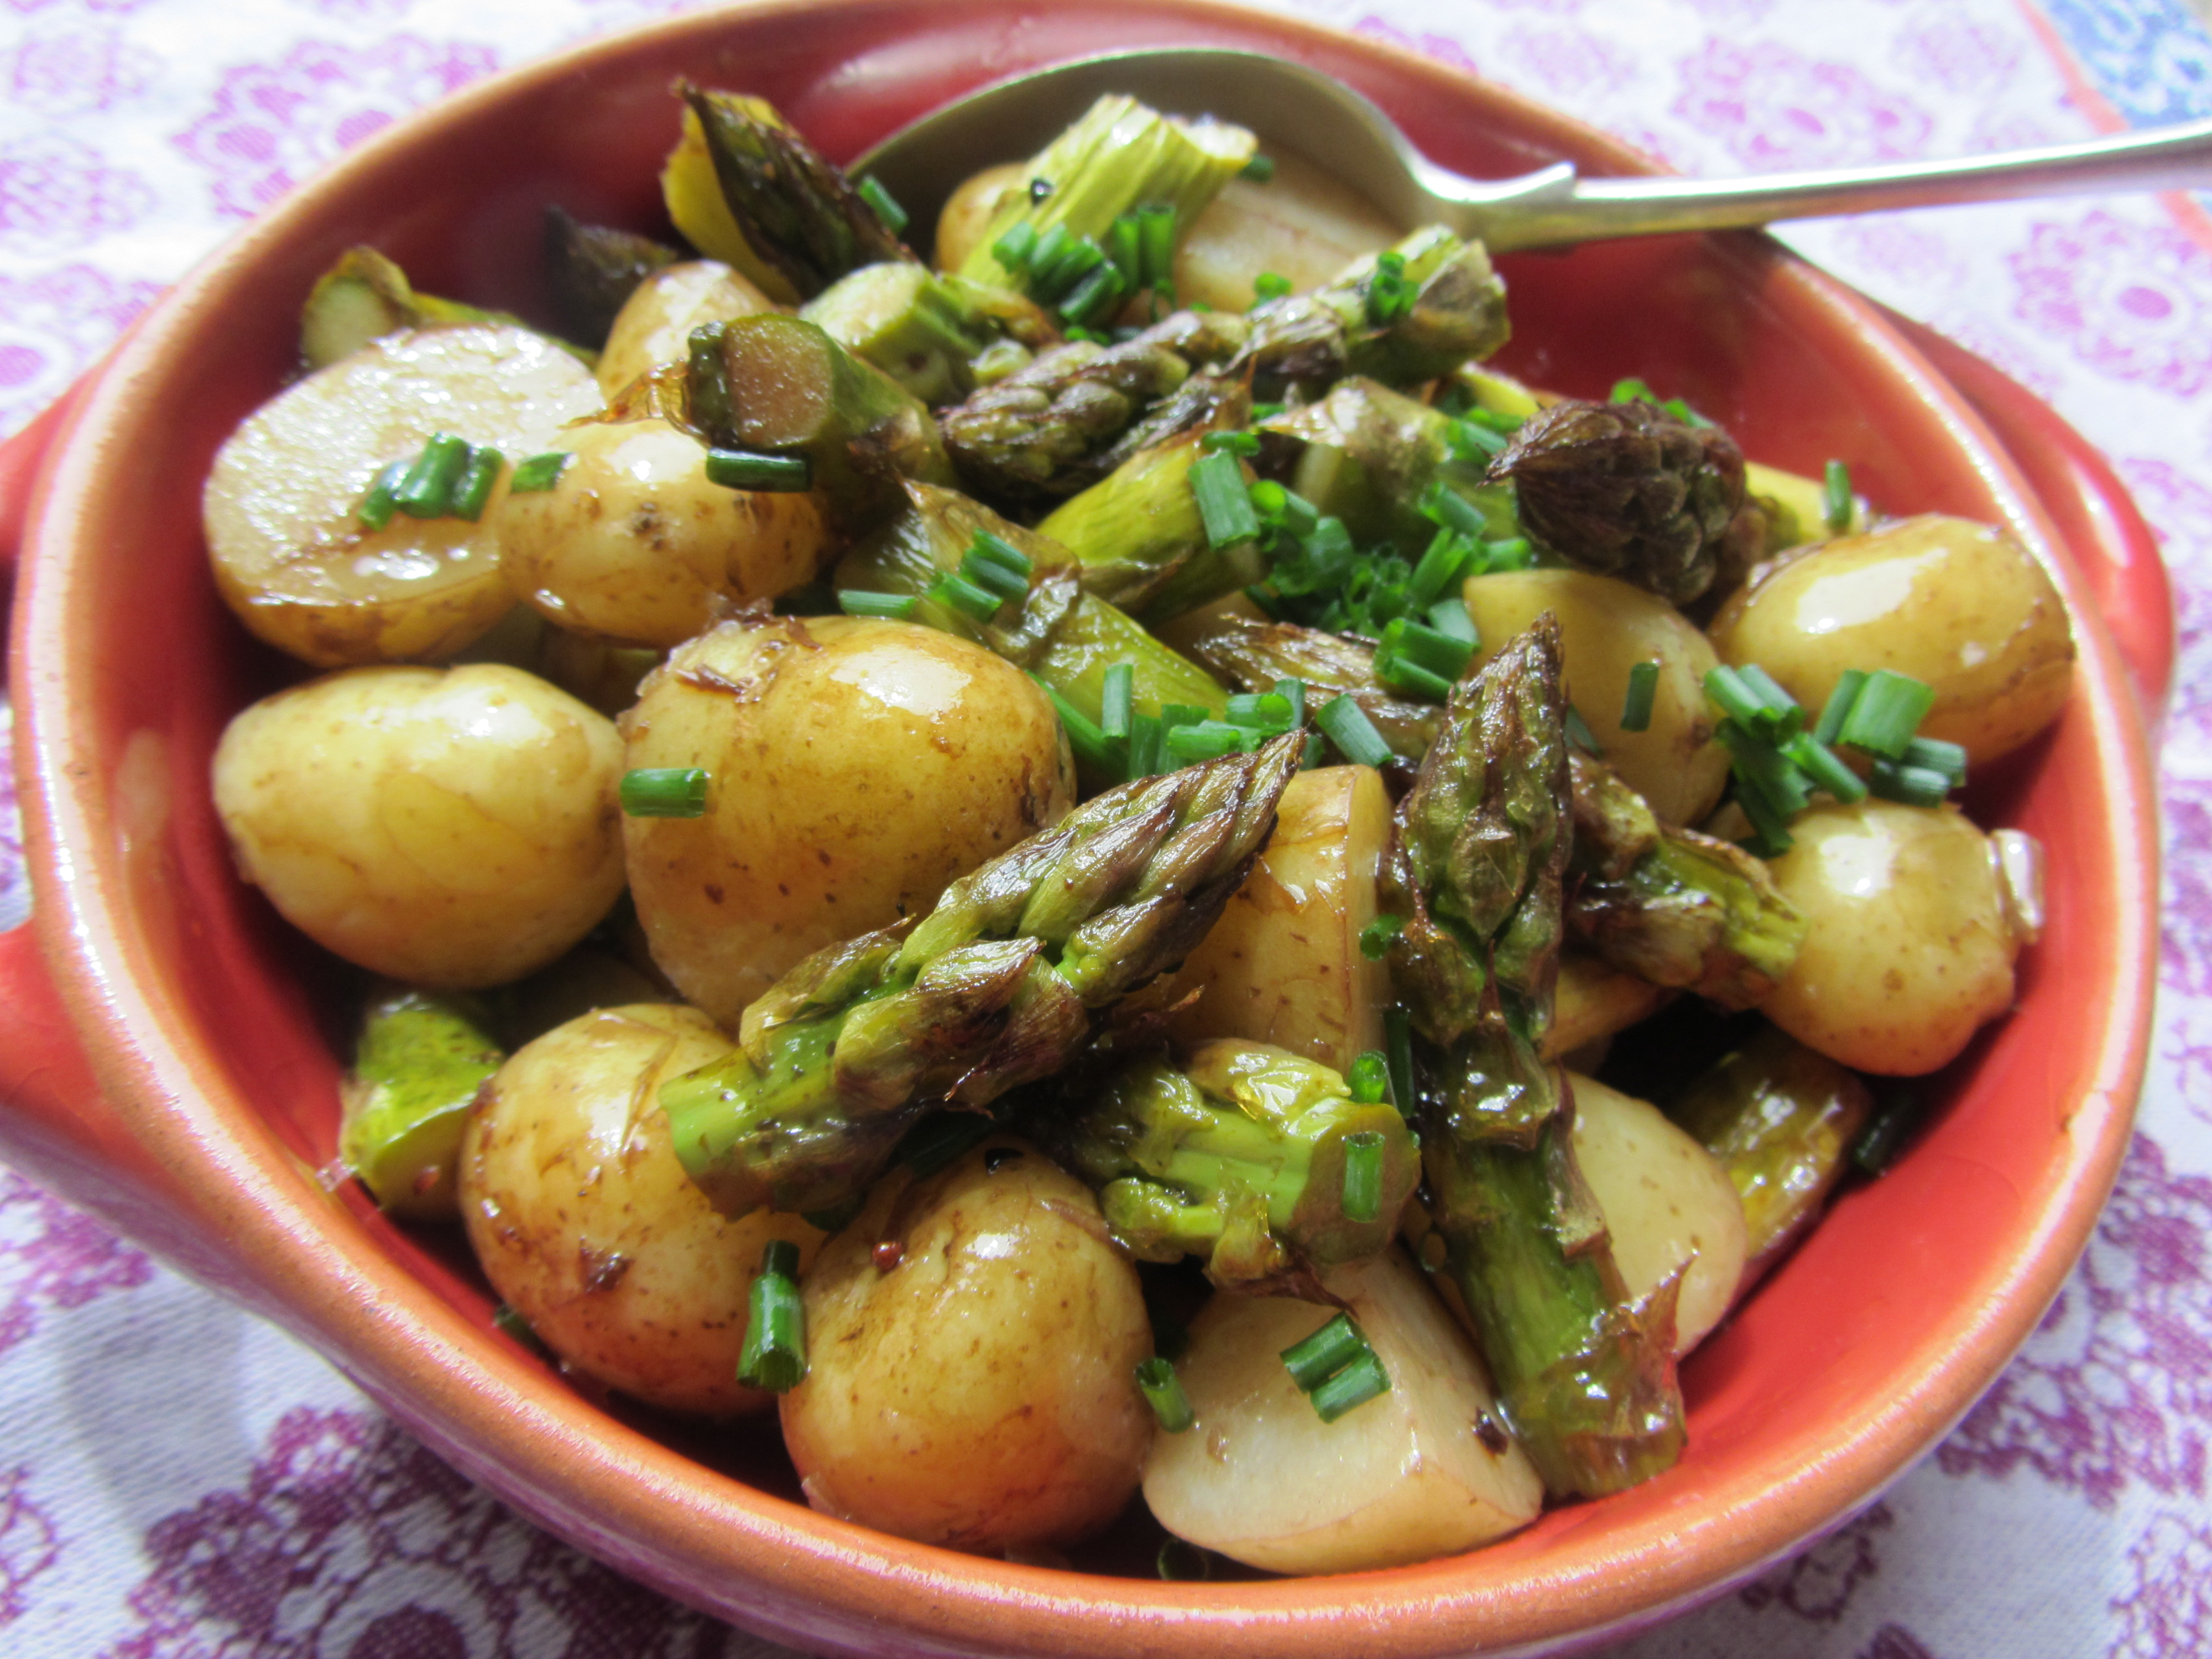 Roasted Asparagus and New Potato Salad